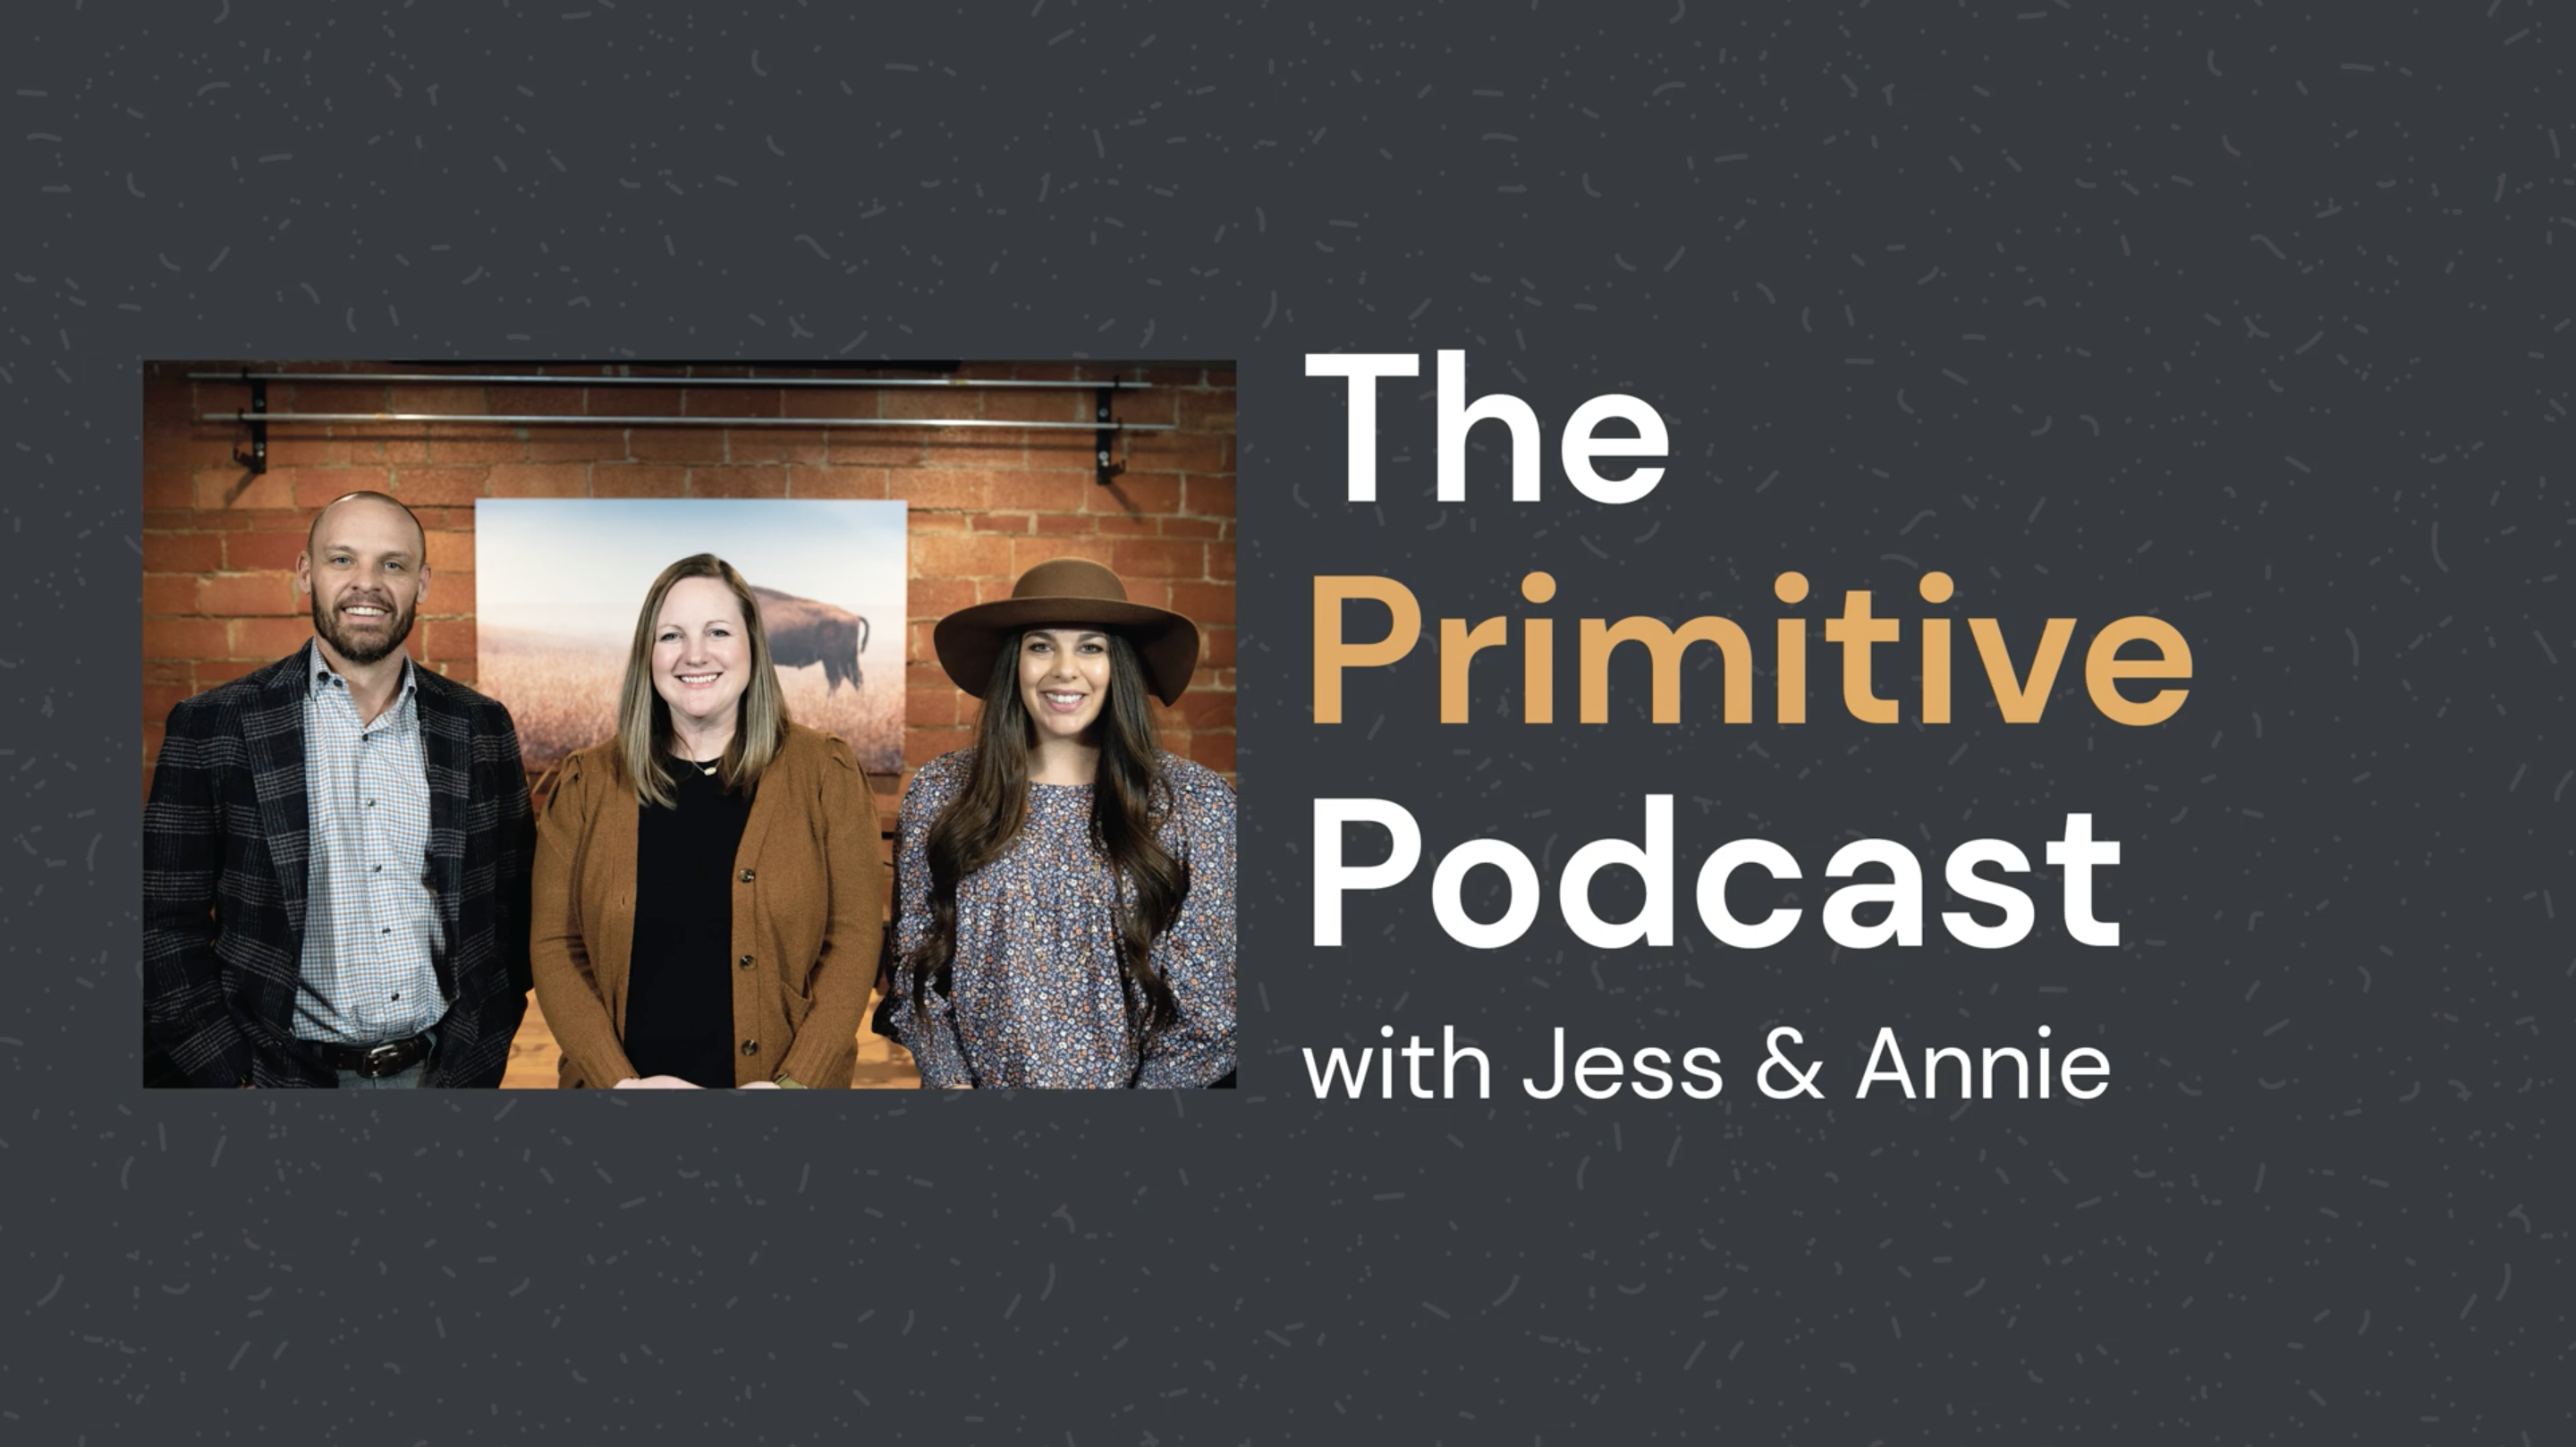 The Primitive Podcast with Jess & Annie